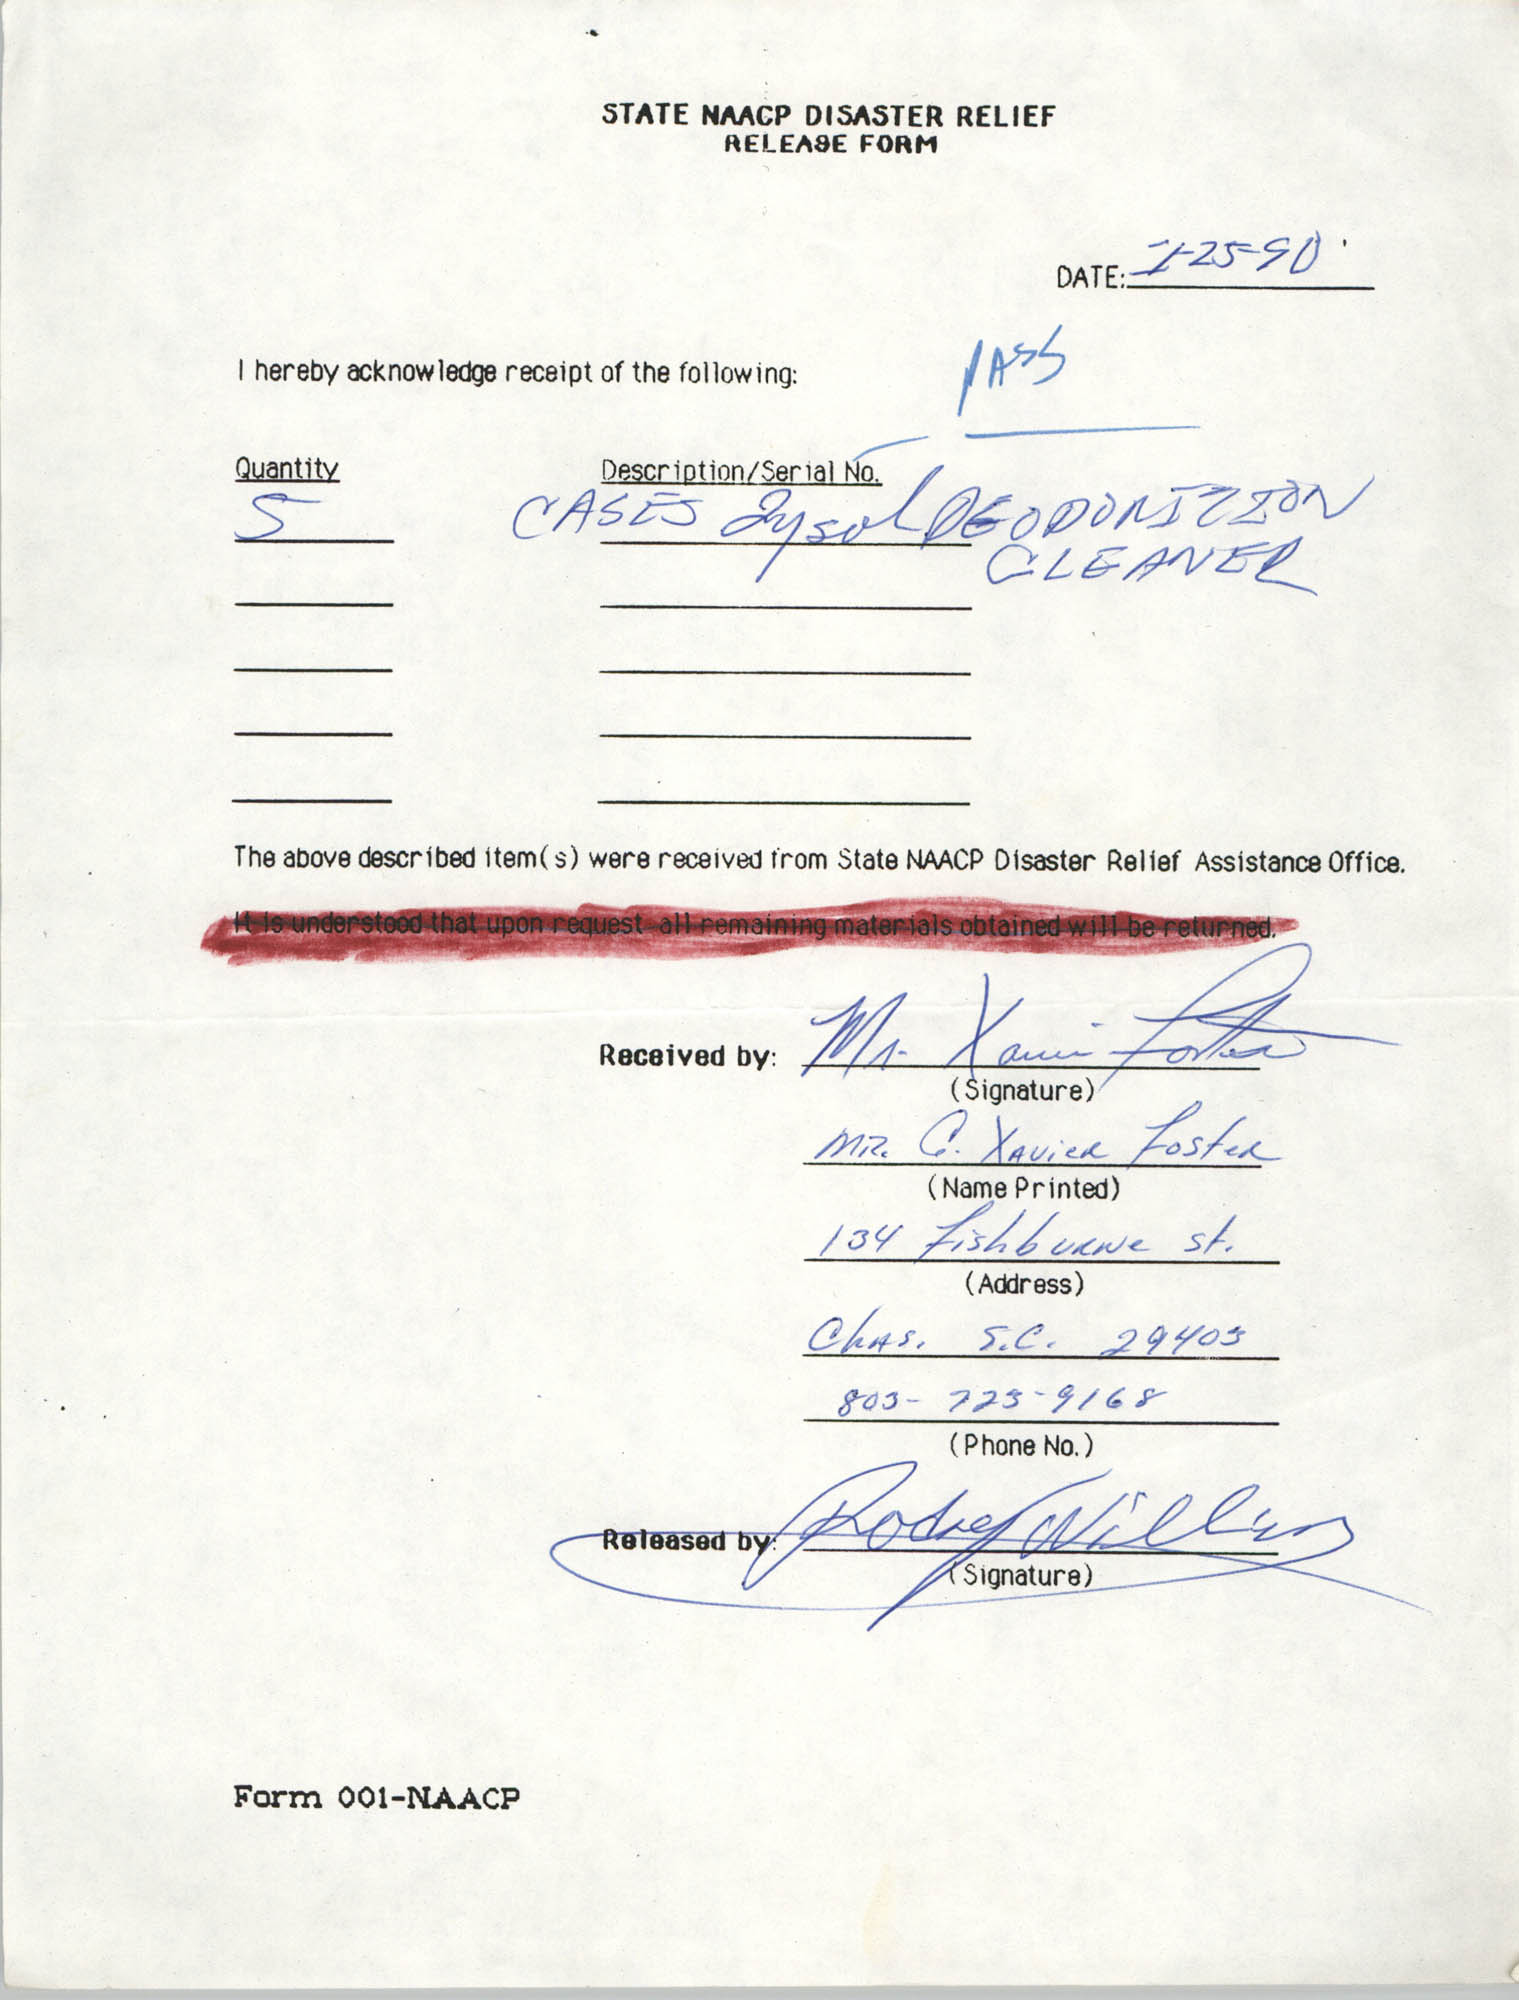 State NAACP Disaster Relief, Hurricane Huge Release Form, 1989, Page 8